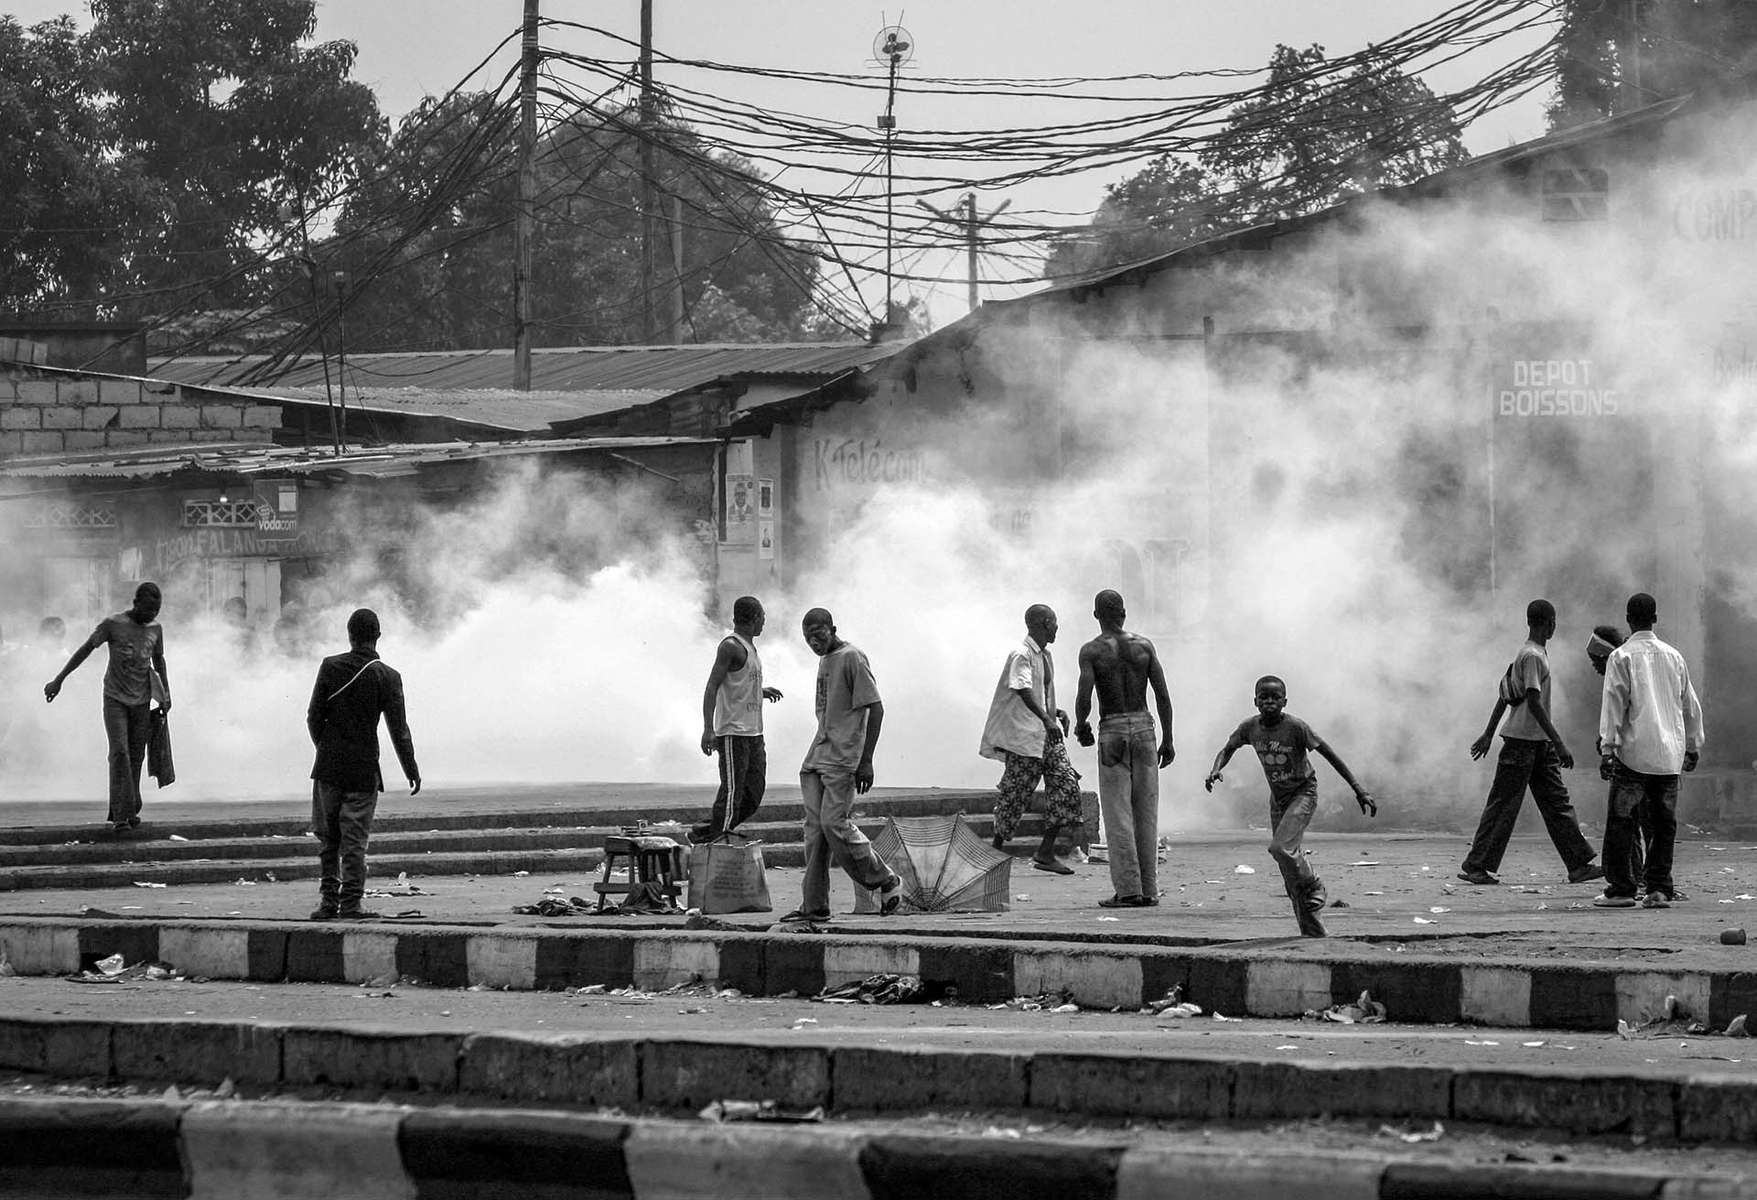 Tear gas fills the streets of Kinshasa during the protest by UDPS opposition supporters.